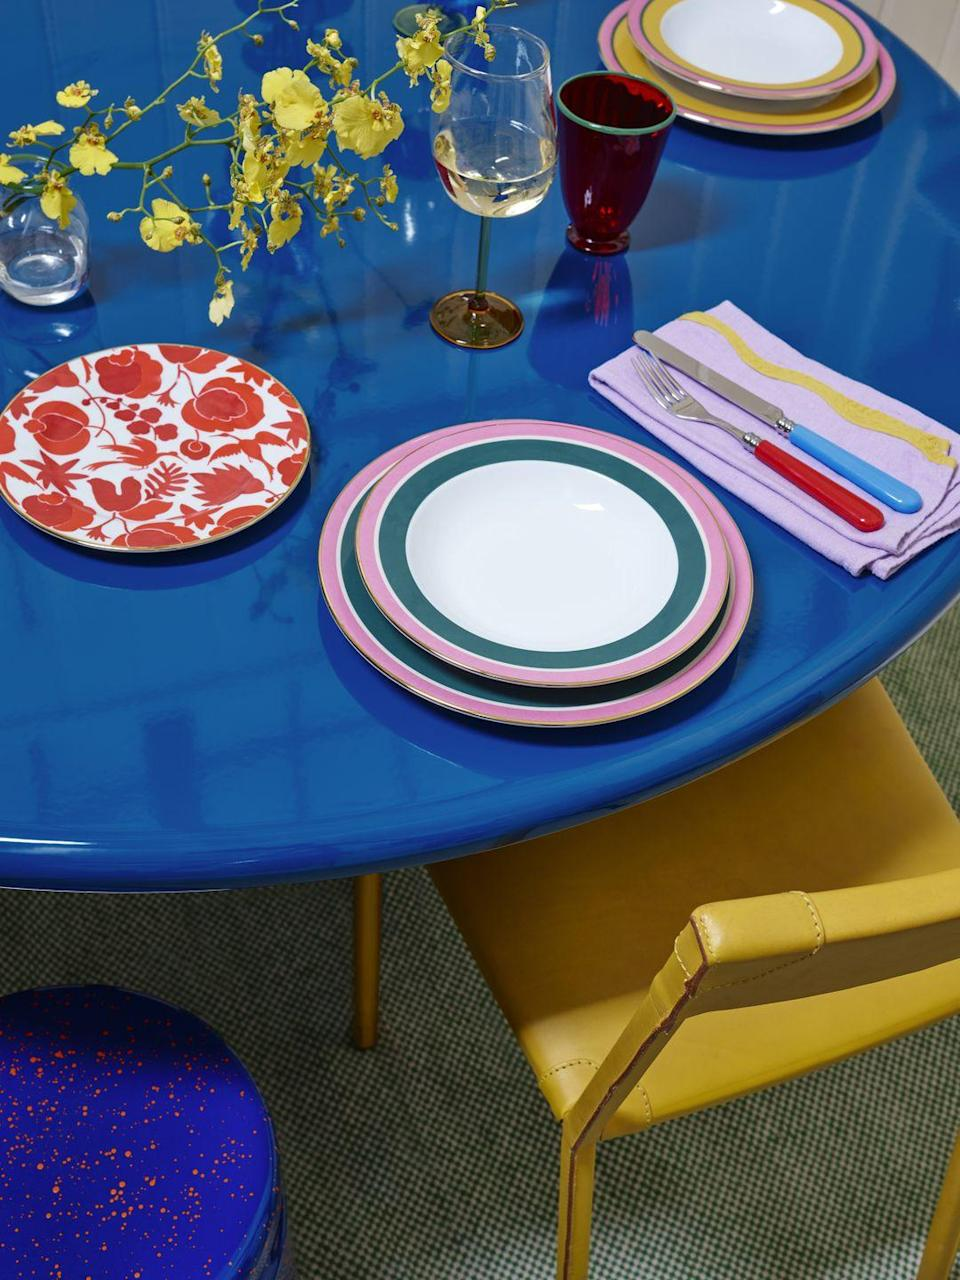 """<p>Getting the colour balance right for this look is essential, so pick contemporary variations of block primary hues as your base. Here, we've combined furniture pieces in cherry red, azure blue and bumblebee yellow to set the scene, with touches of lilac and fern green to add depth. It's important to keep patterns to a minimum for a sophisticated effect – simply allow these bold hues to sing out against neutral white walls. 'Smalto' table by Barber & Osgerby for Knoll, £4,176, <a href=""""https://www.scp.co.uk/products/smalto-table-round"""" rel=""""nofollow noopener"""" target=""""_blank"""" data-ylk=""""slk:scp.com"""" class=""""link rapid-noclick-resp"""">scp.com</a>; La DoubleJ 'Rainbow' plate and bowl, £80, <a href=""""https://www.matchesfashion.com/products/La-DoubleJ-Rainbow-18kt-gilded-porcelain-bowl-%26-plate-set-1406948"""" rel=""""nofollow noopener"""" target=""""_blank"""" data-ylk=""""slk:matchesfashion.com"""" class=""""link rapid-noclick-resp"""">matchesfashion.com</a>; set of six linen napkins, £92, and 12 piece 'Rainbow' cutlery set, £130, both <a href=""""https://matildagoad.com/"""" rel=""""nofollow noopener"""" target=""""_blank"""" data-ylk=""""slk:matildagoad.com"""" class=""""link rapid-noclick-resp"""">matildagoad.com</a><br><br></p>"""